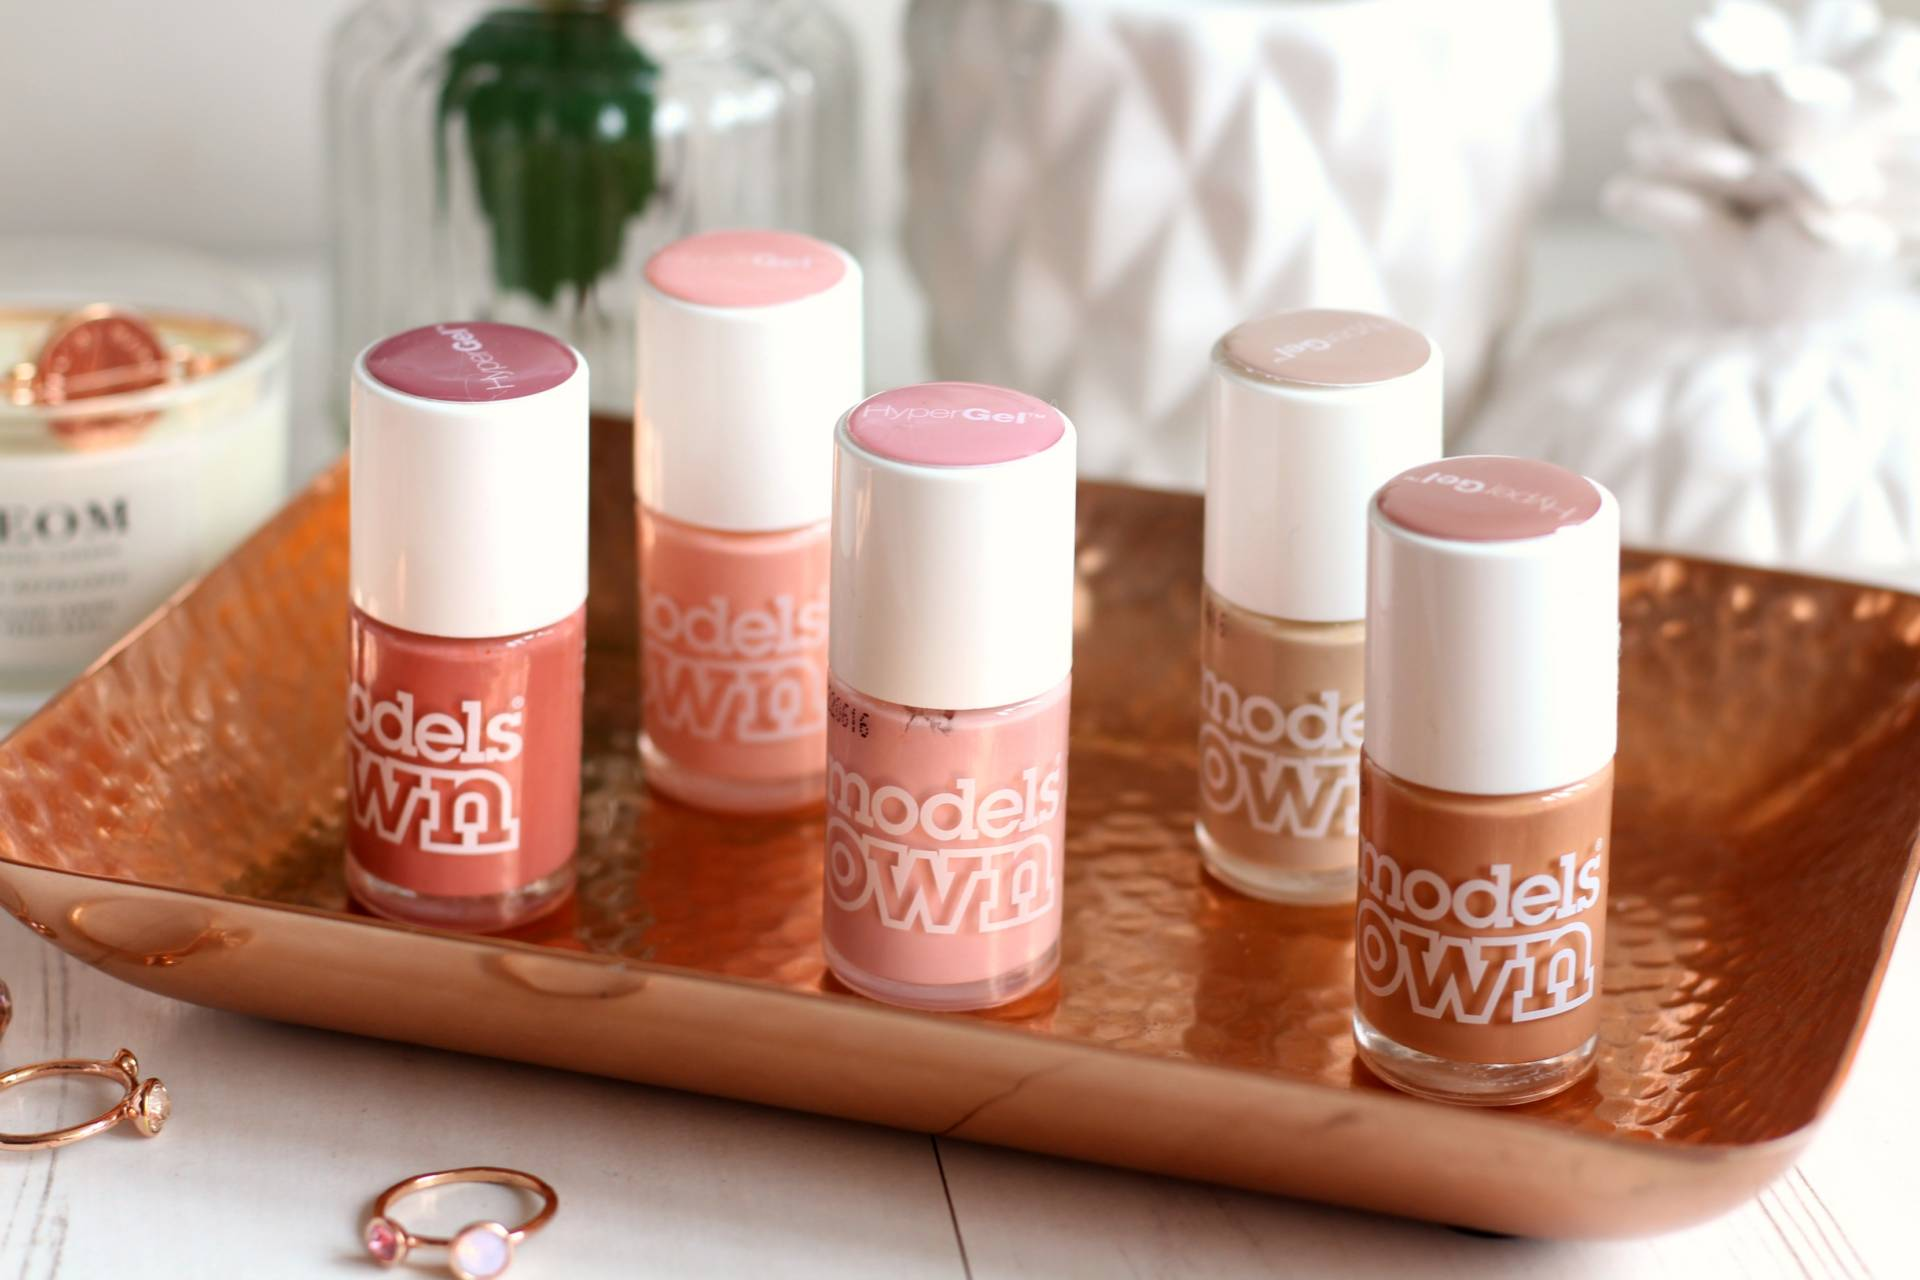 Models Own Dare to Bare Collection – The Nail Polishes